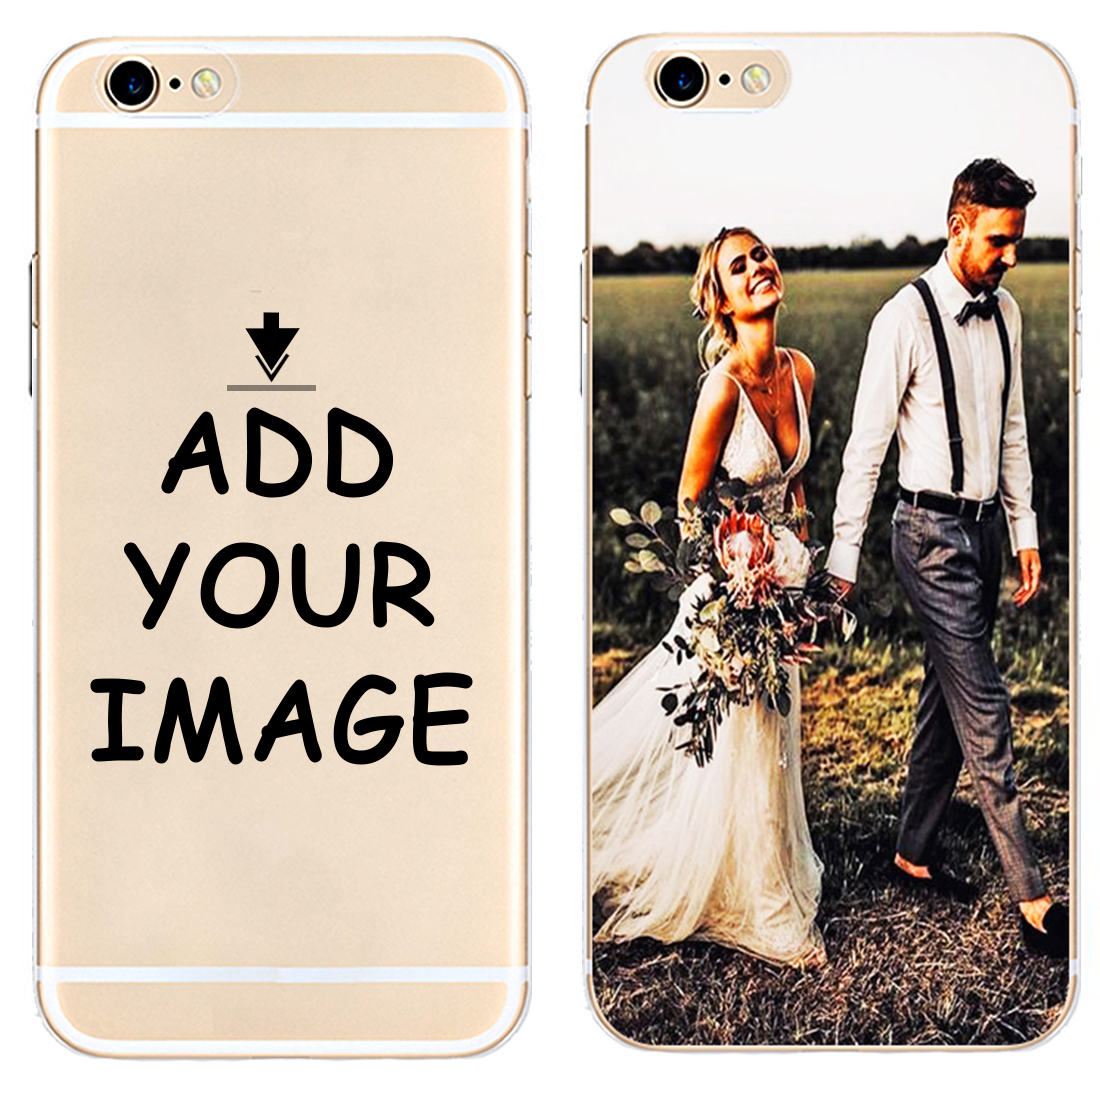 DK Customize your own picture DIY pattern images new Hard Phone Case Cover For iPhone 6 6S 7 8 Plus 5S 5C 4S X XS XR XSMax Coque in Half wrapped Cases from Cellphones Telecommunications